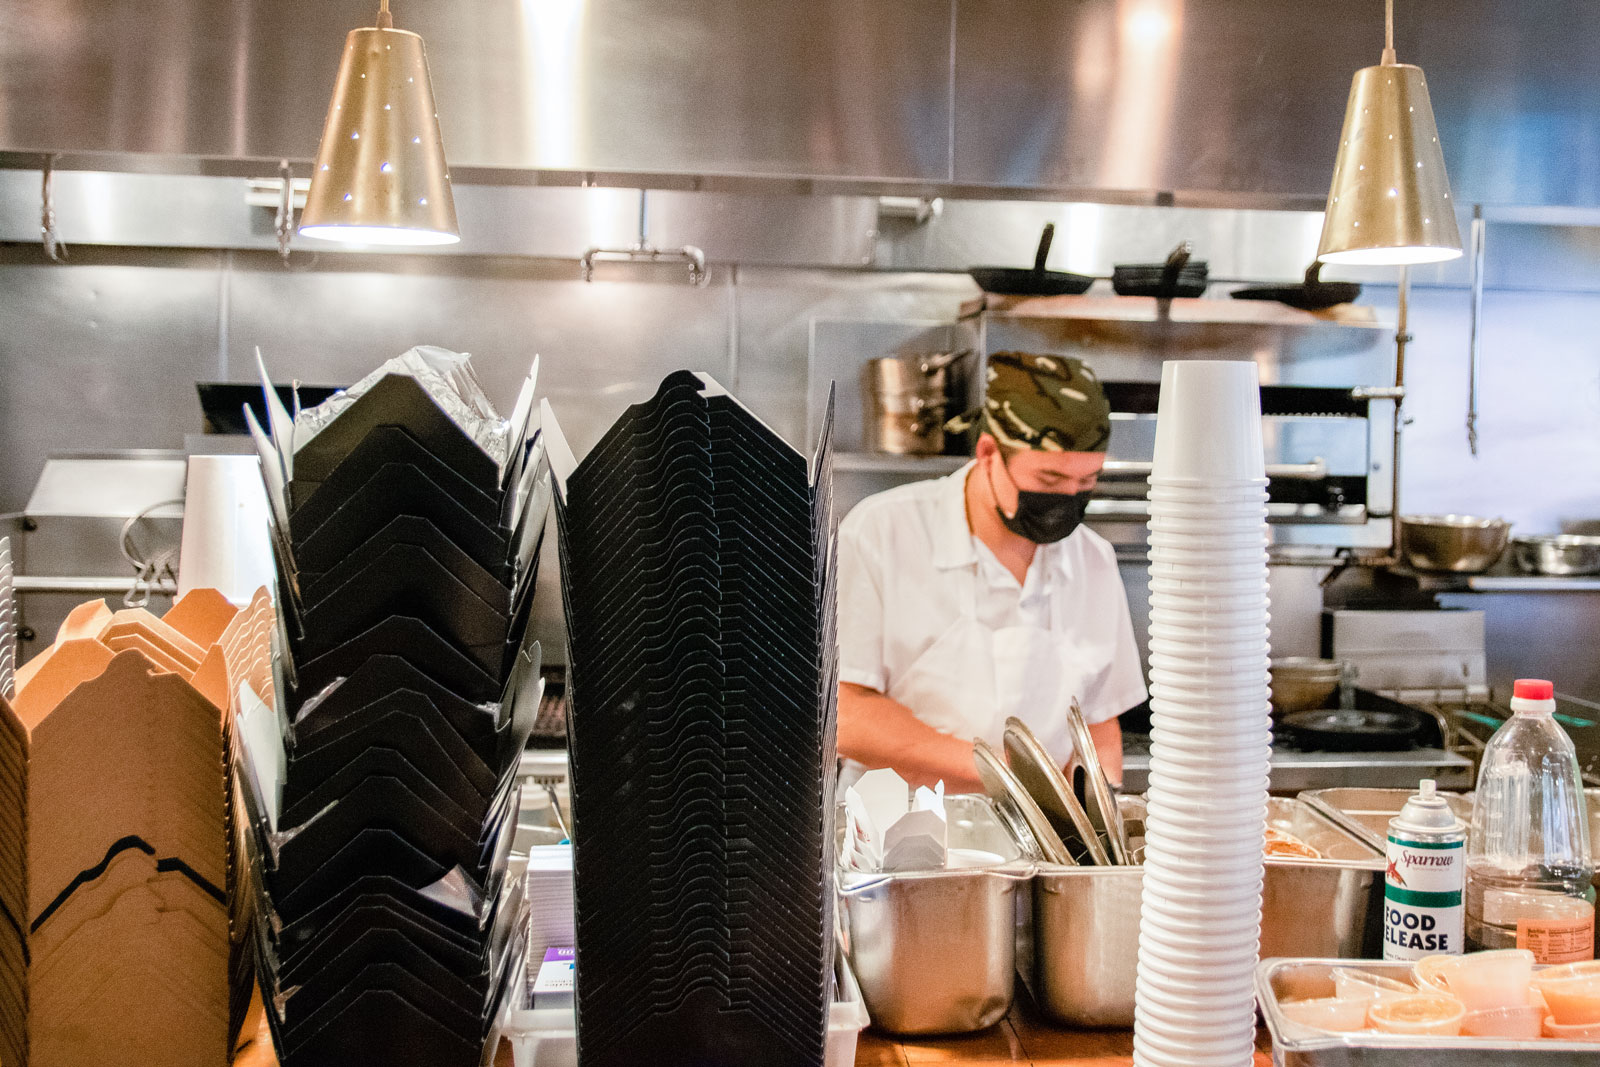 A chef working in the restaurant kitchen of Myers + Chang.